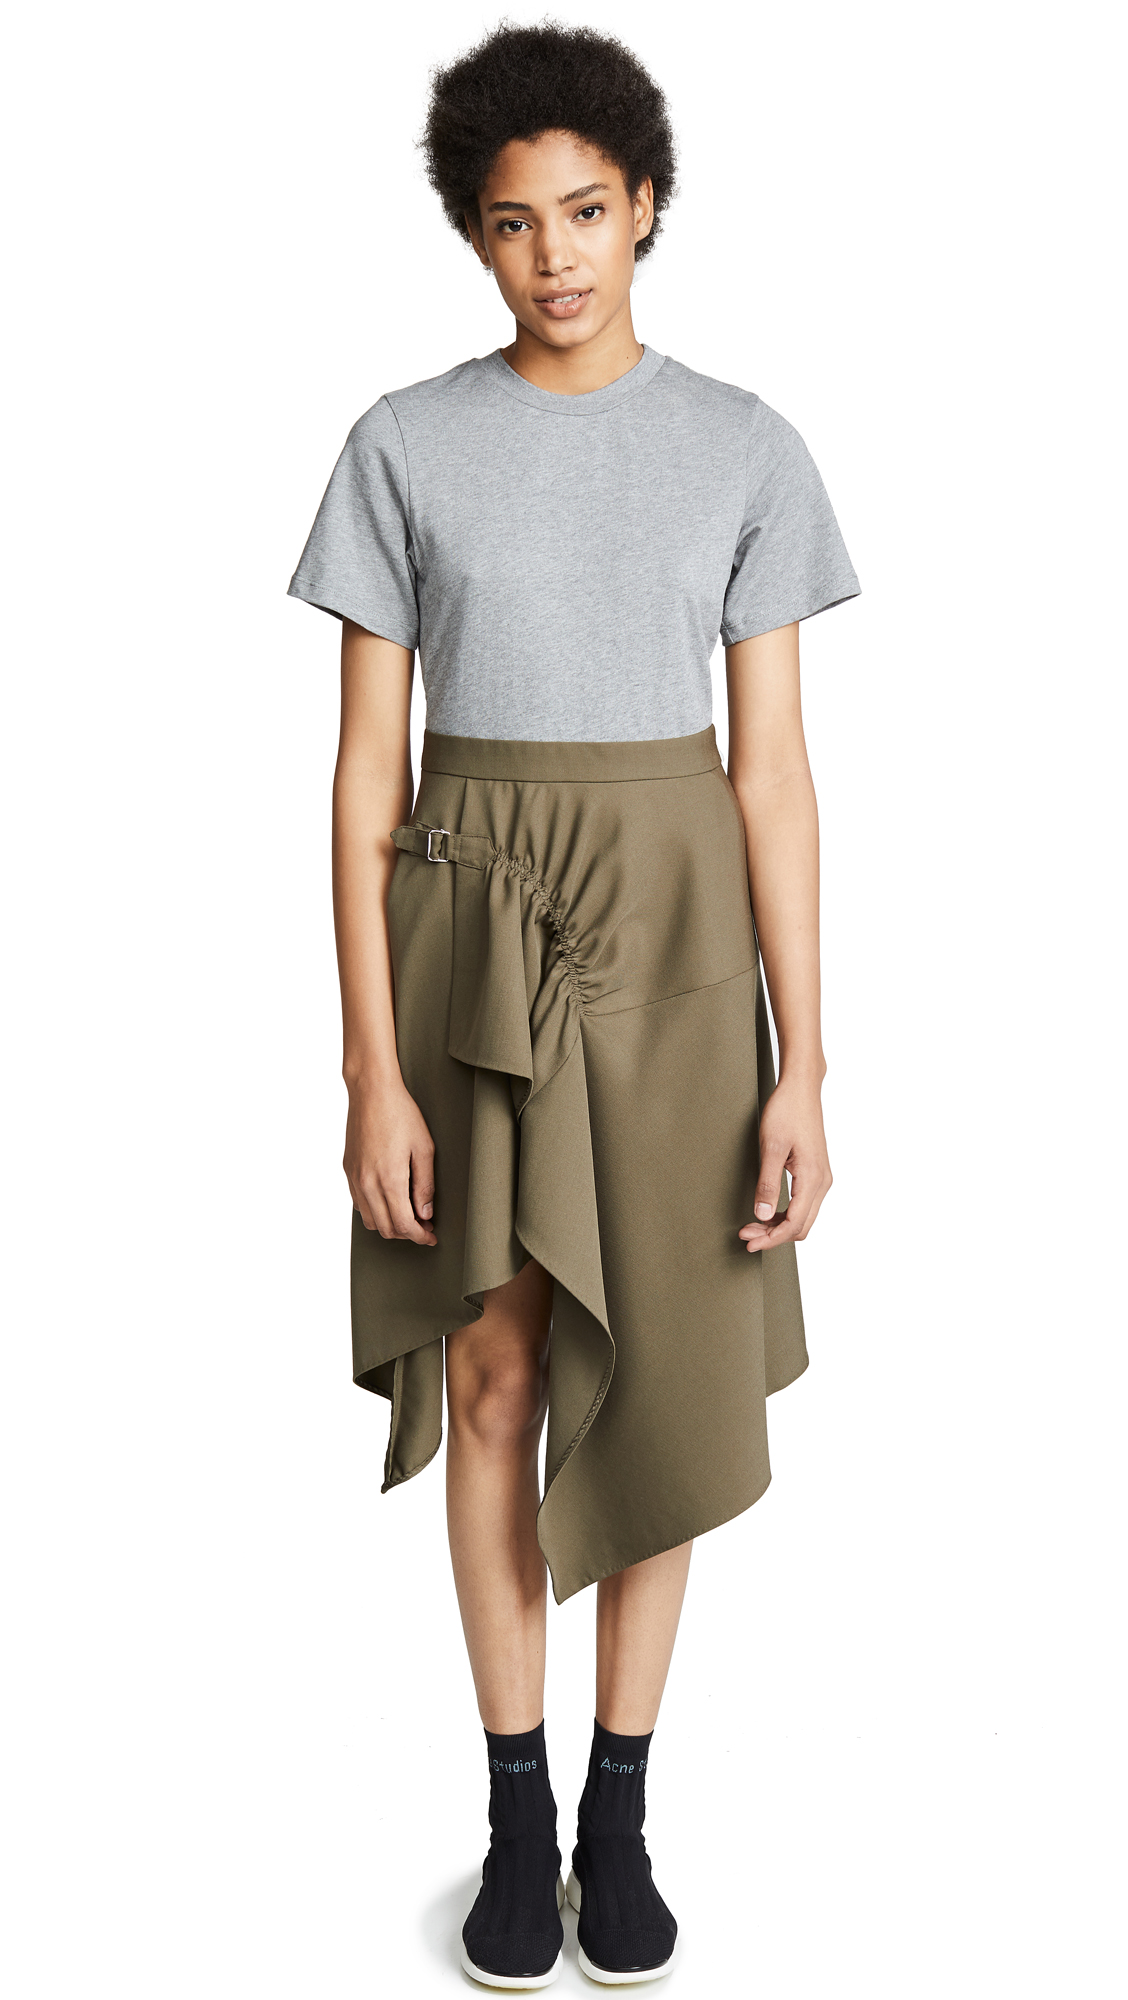 3.1 Phillip Lim Handkerchief Dress - Fir Green